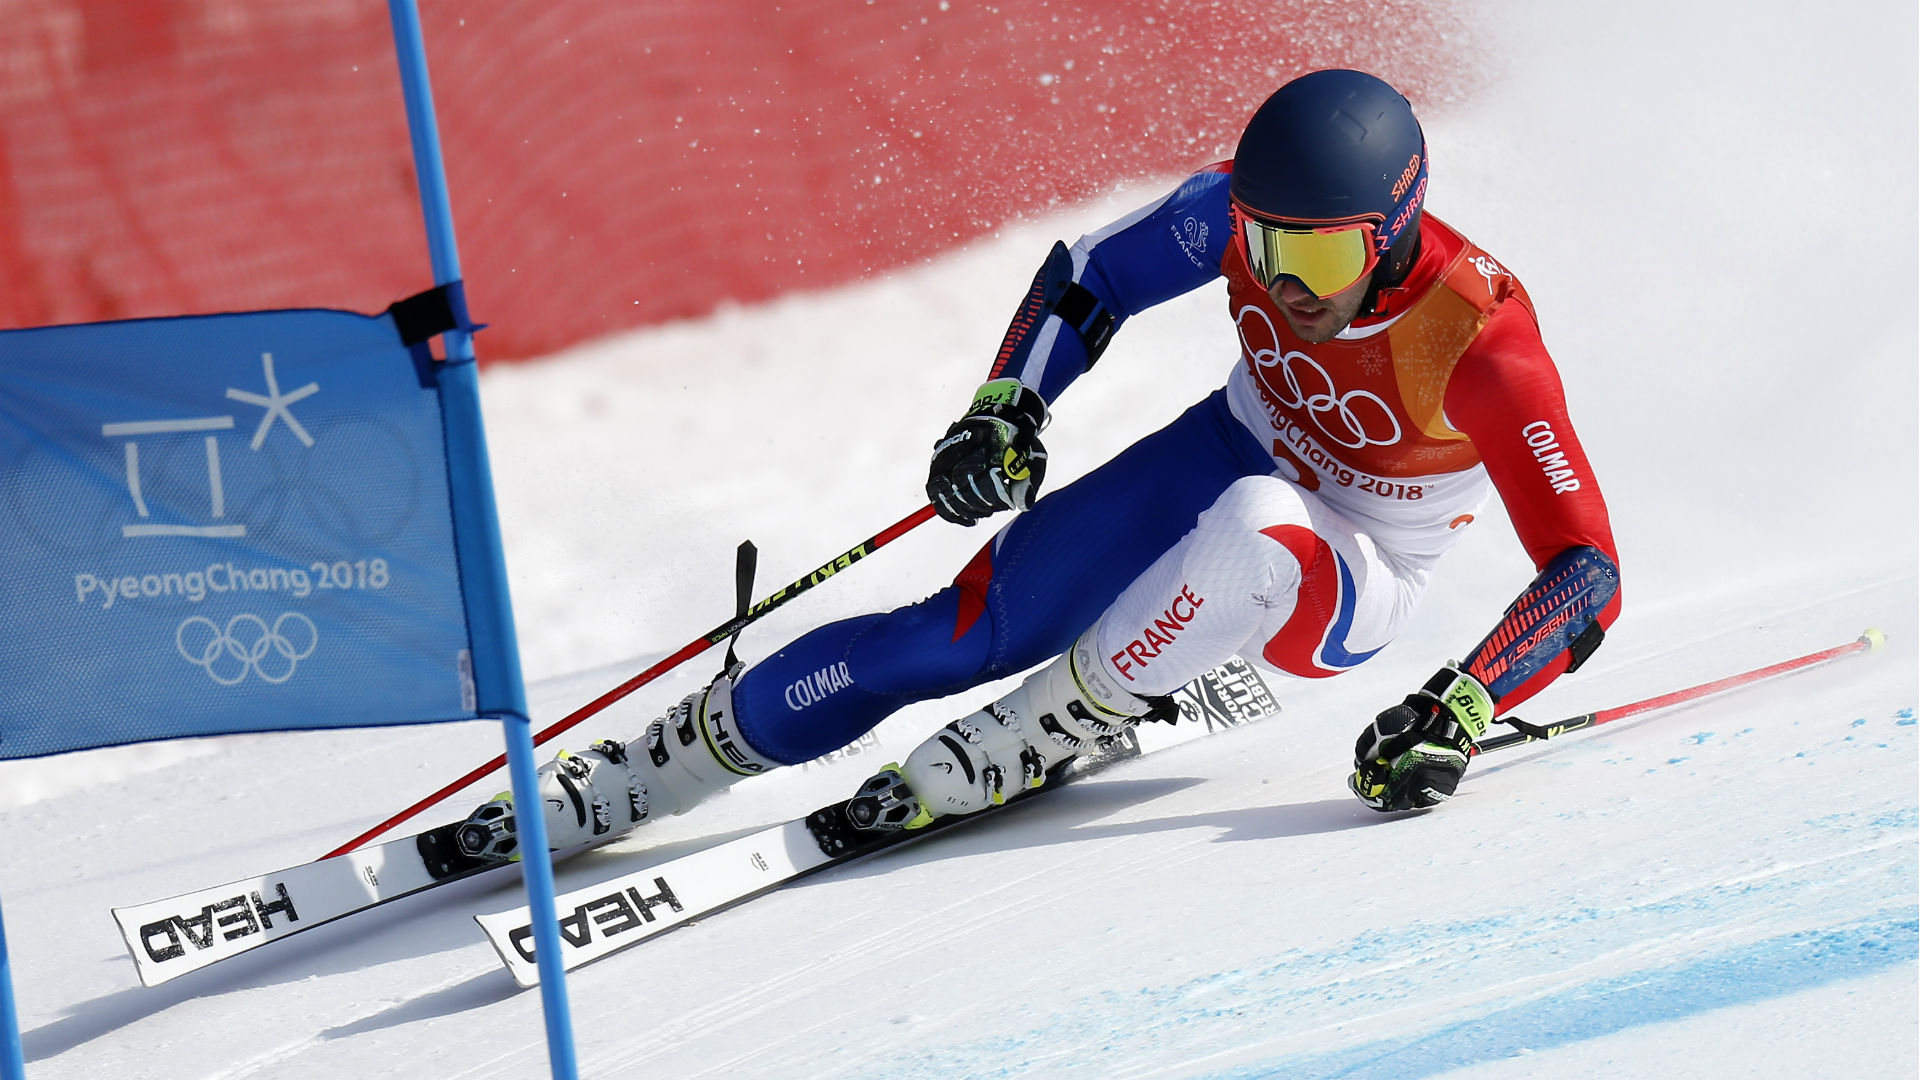 French skier Mathieu Faivre sent home from the Winter Olympics